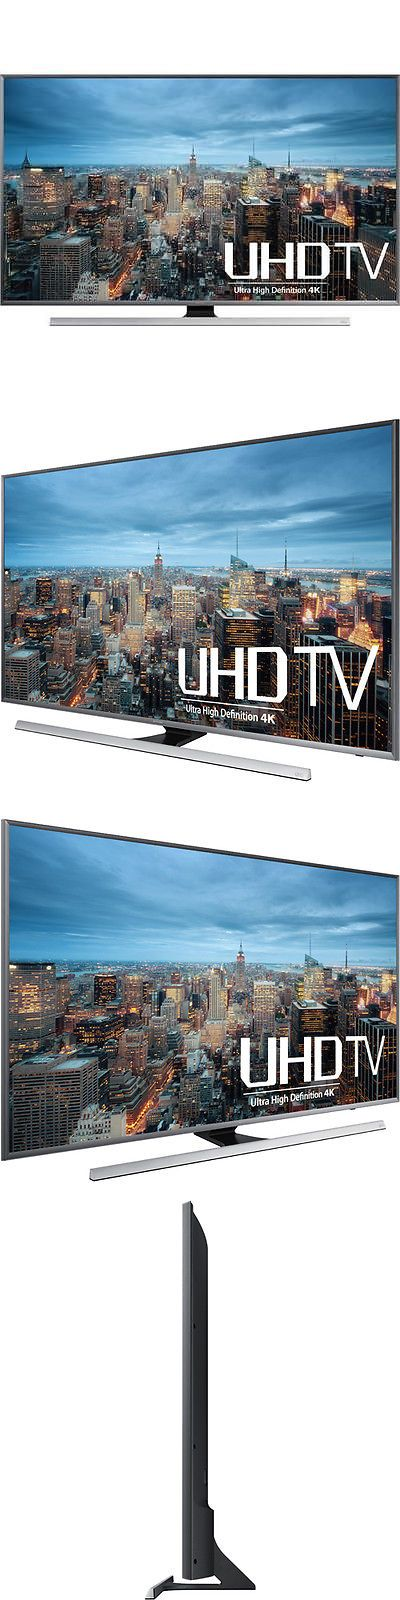 Home Audio: Samsung Un85ju7100 85 Class Smart 3D Led 4K Uhd Tv With Wi-Fi -> BUY IT NOW ONLY: $5997.99 on eBay!